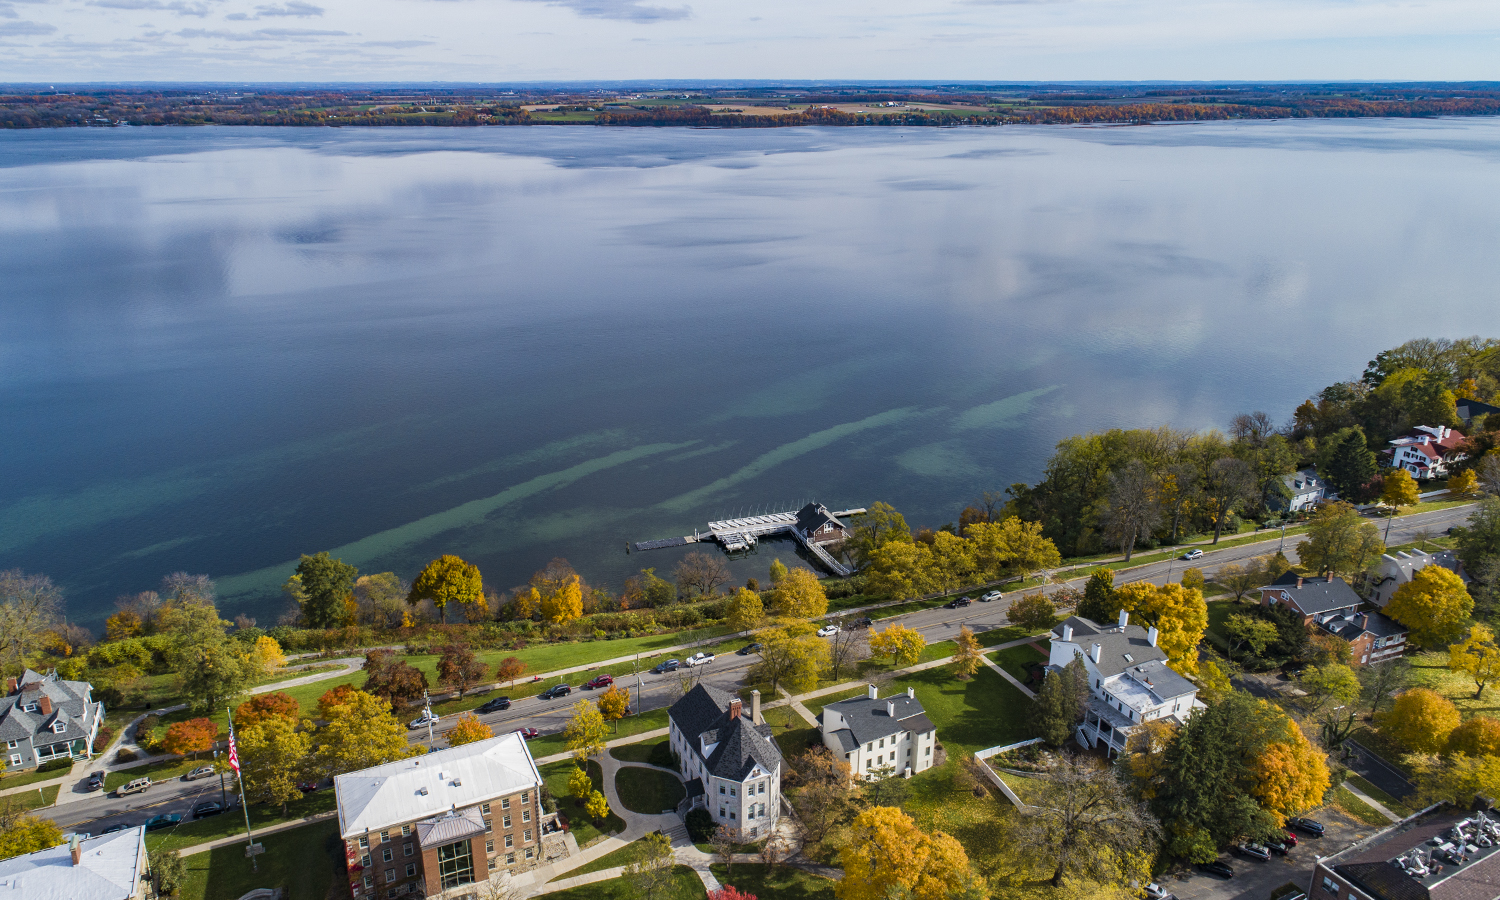 An aerial view of Seneca Lake.